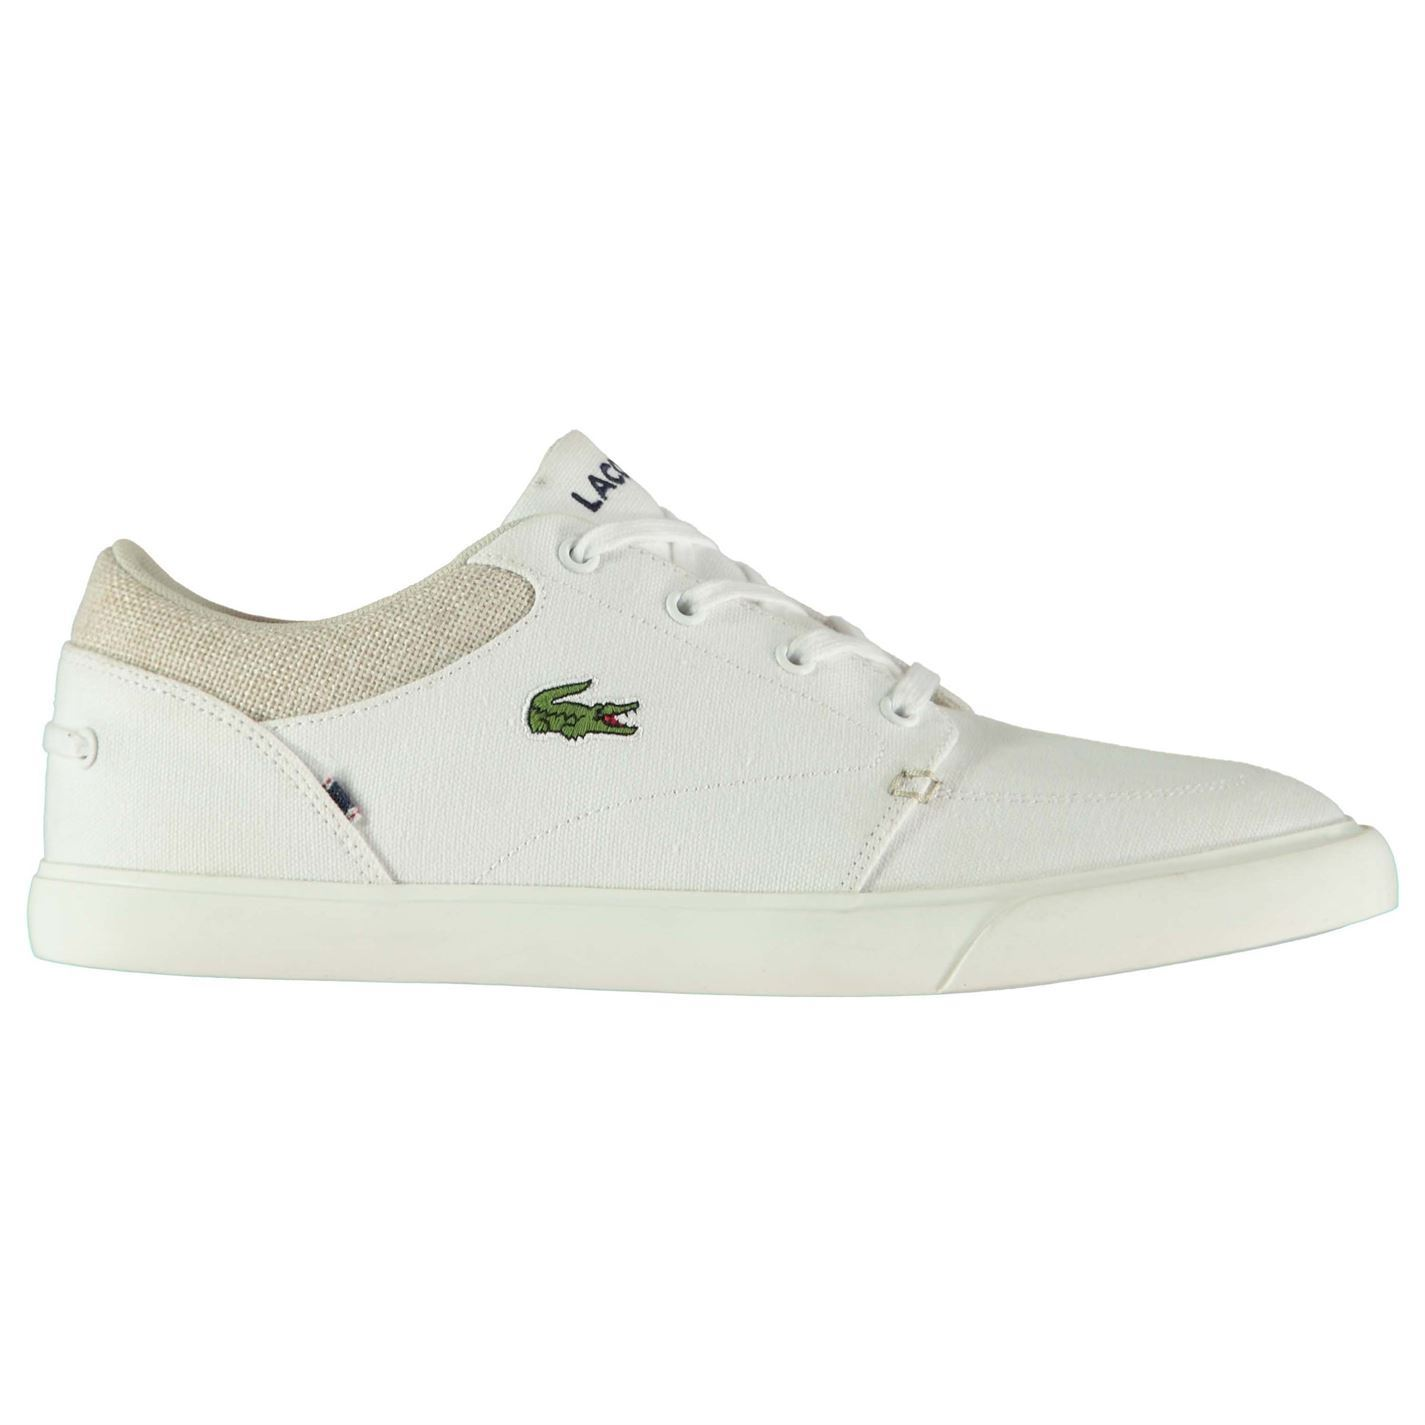 Image is loading Mens-Lacoste-Bayliss-Trainers-Low-Lace-Up-Textured-